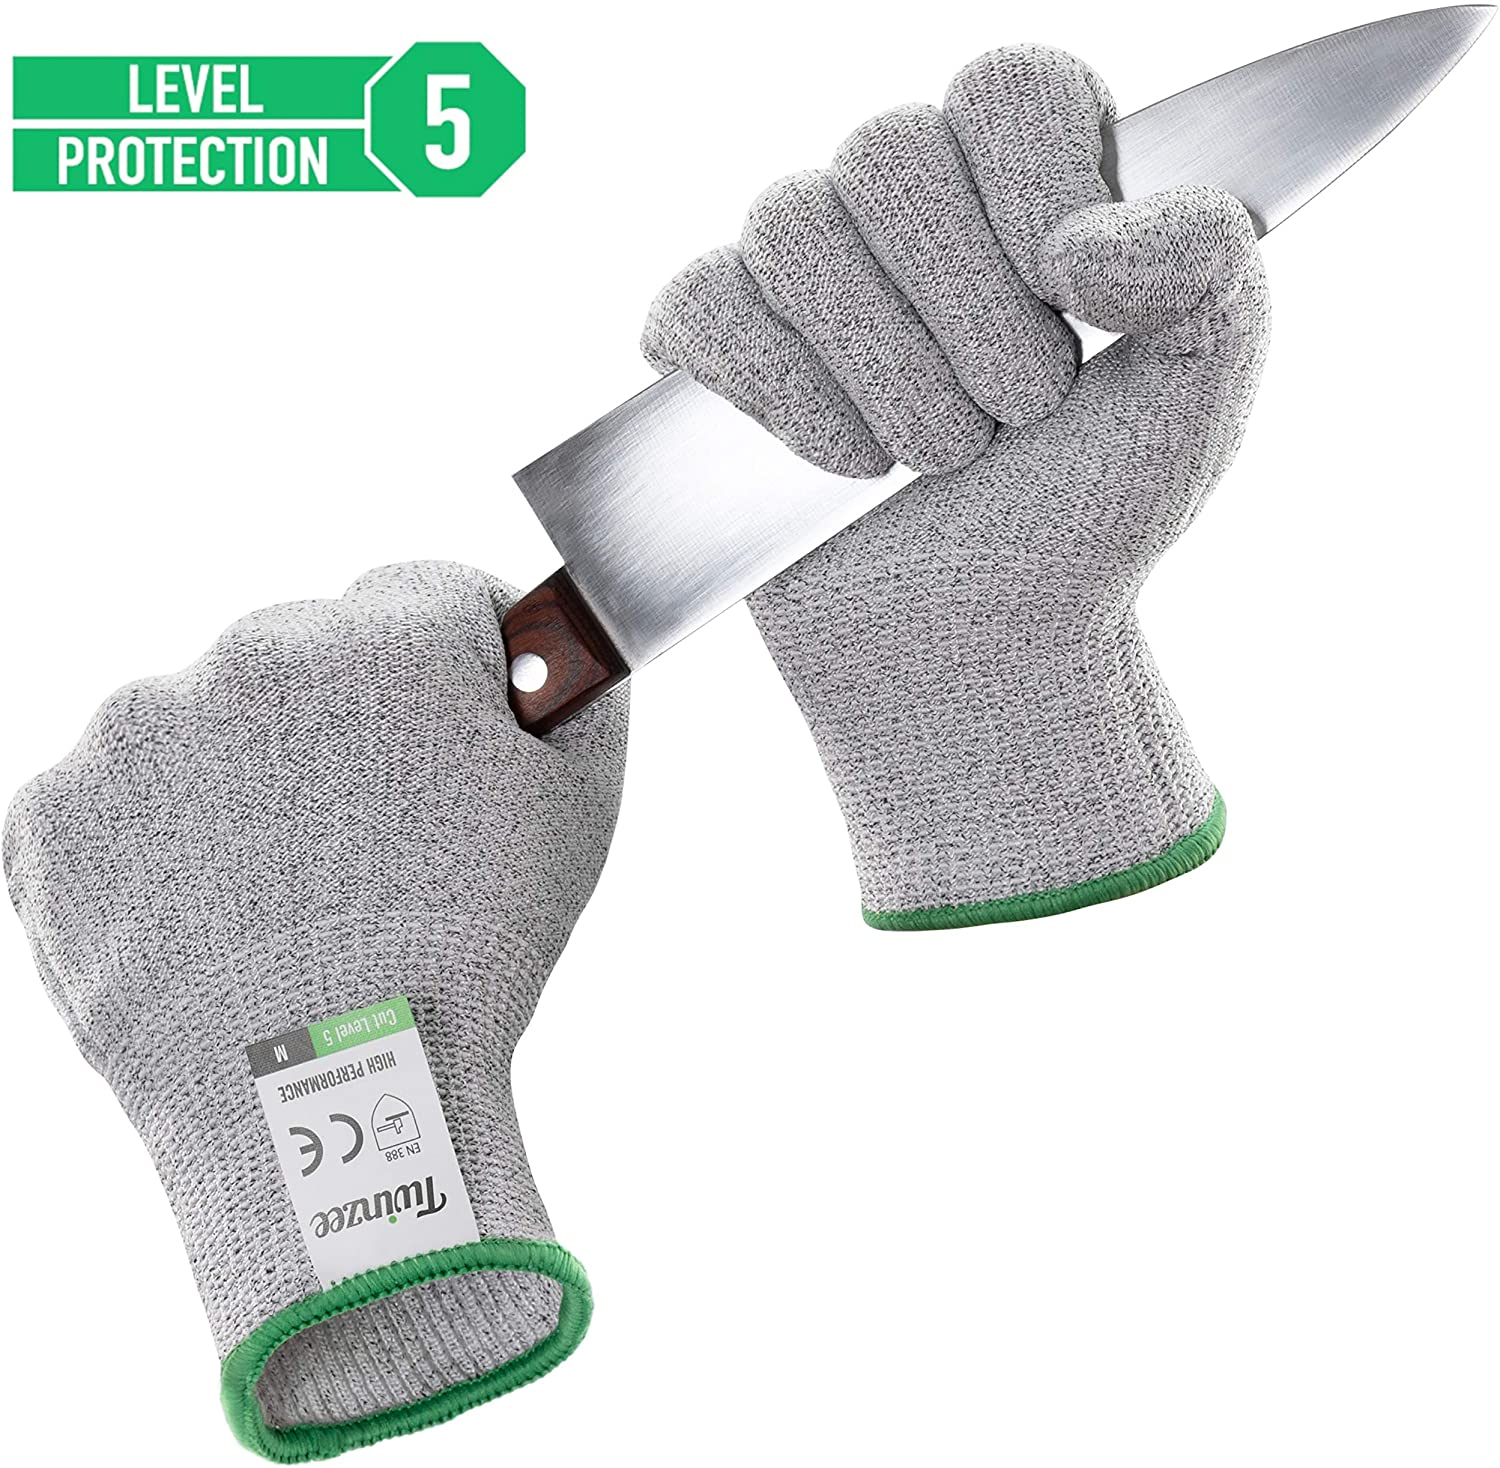 Twinzee Cut Resistant Kitchen Gloves - High Performance Level 5 Protection, Food Grade, EN 388 Certified, 1 pair (L)